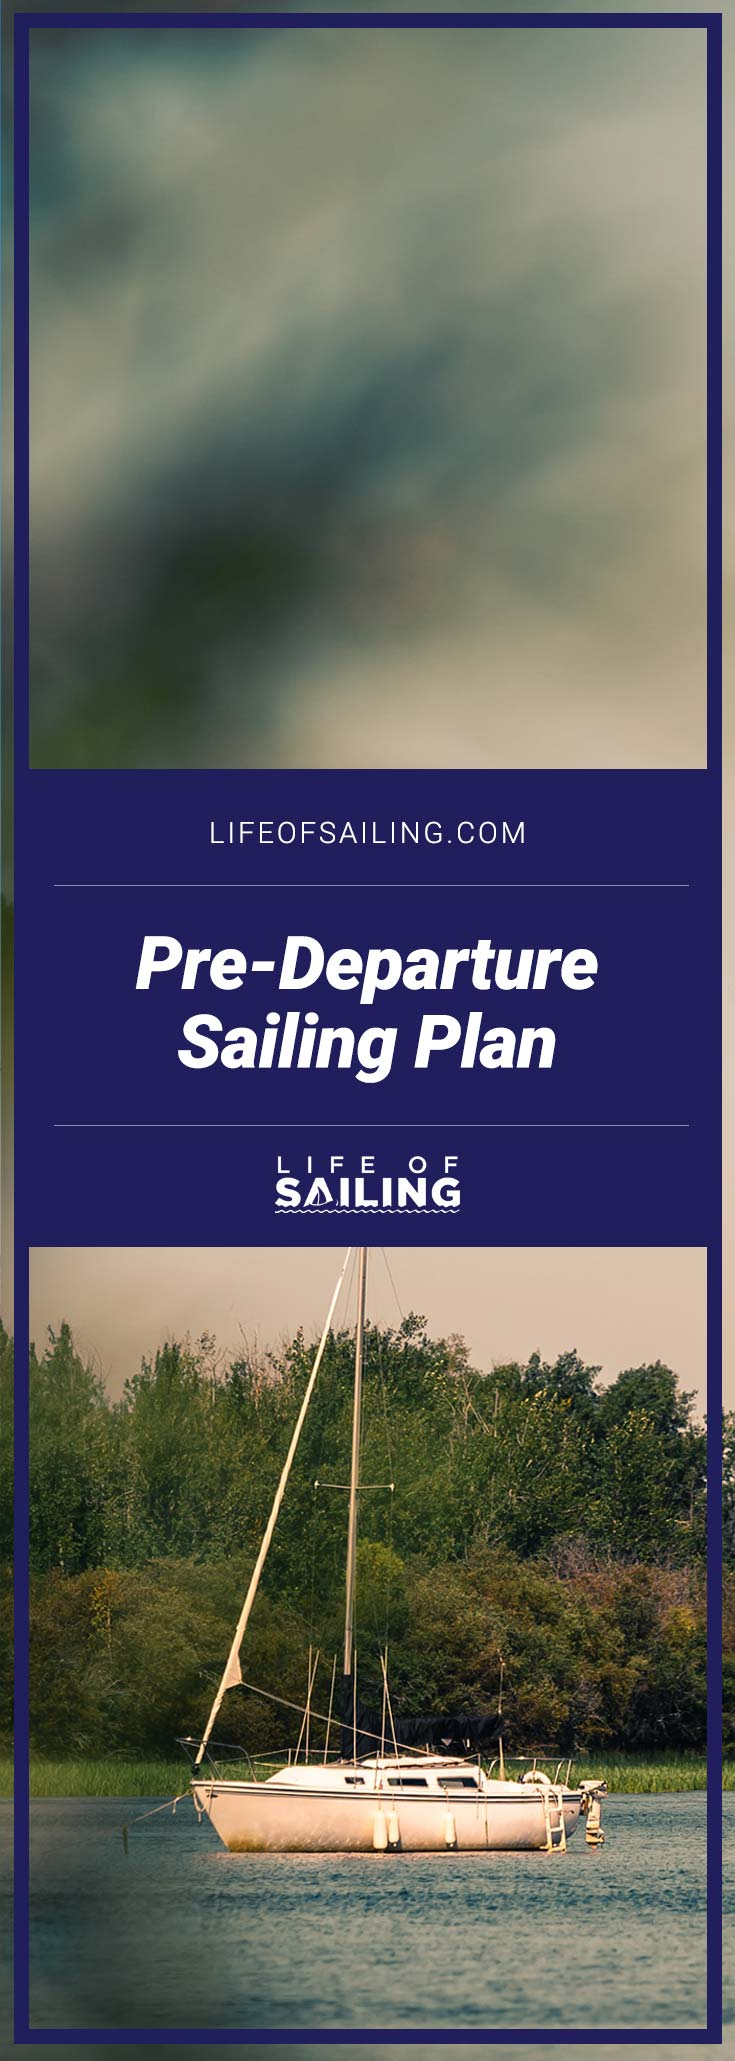 Before You Set Sail: The Pre-Departure Sailing Plan